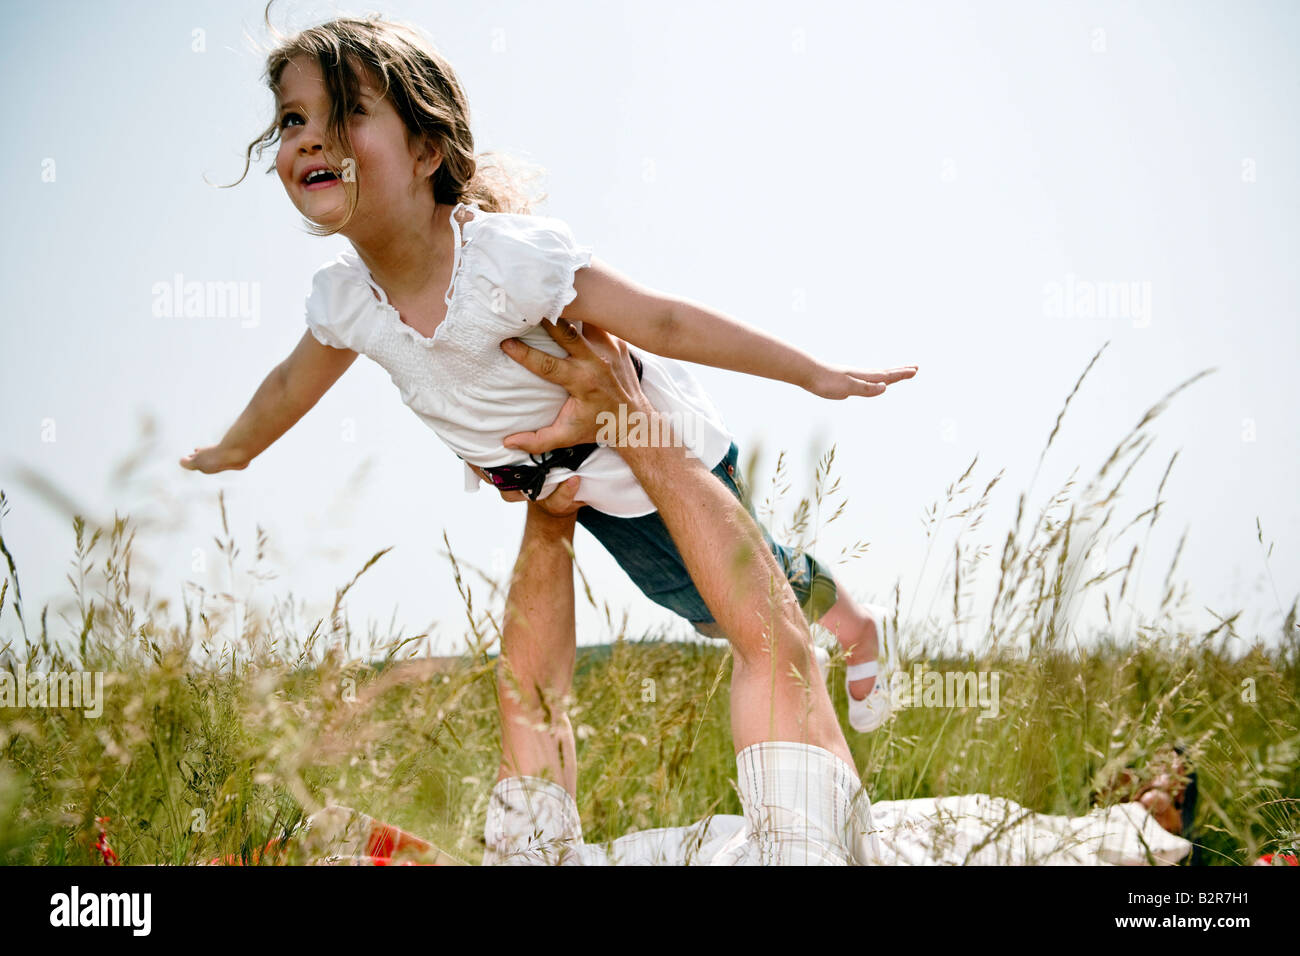 Girl held aloft flying - Stock Image